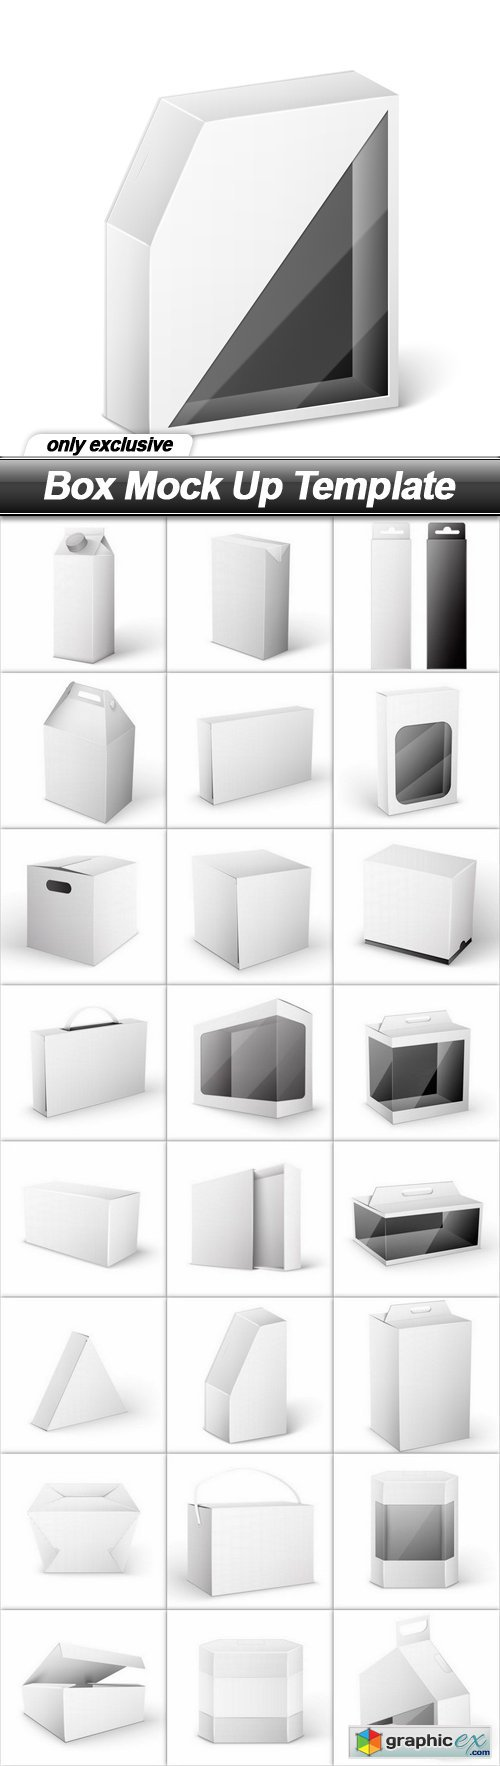 Box Mock Up Template - 25 EPS